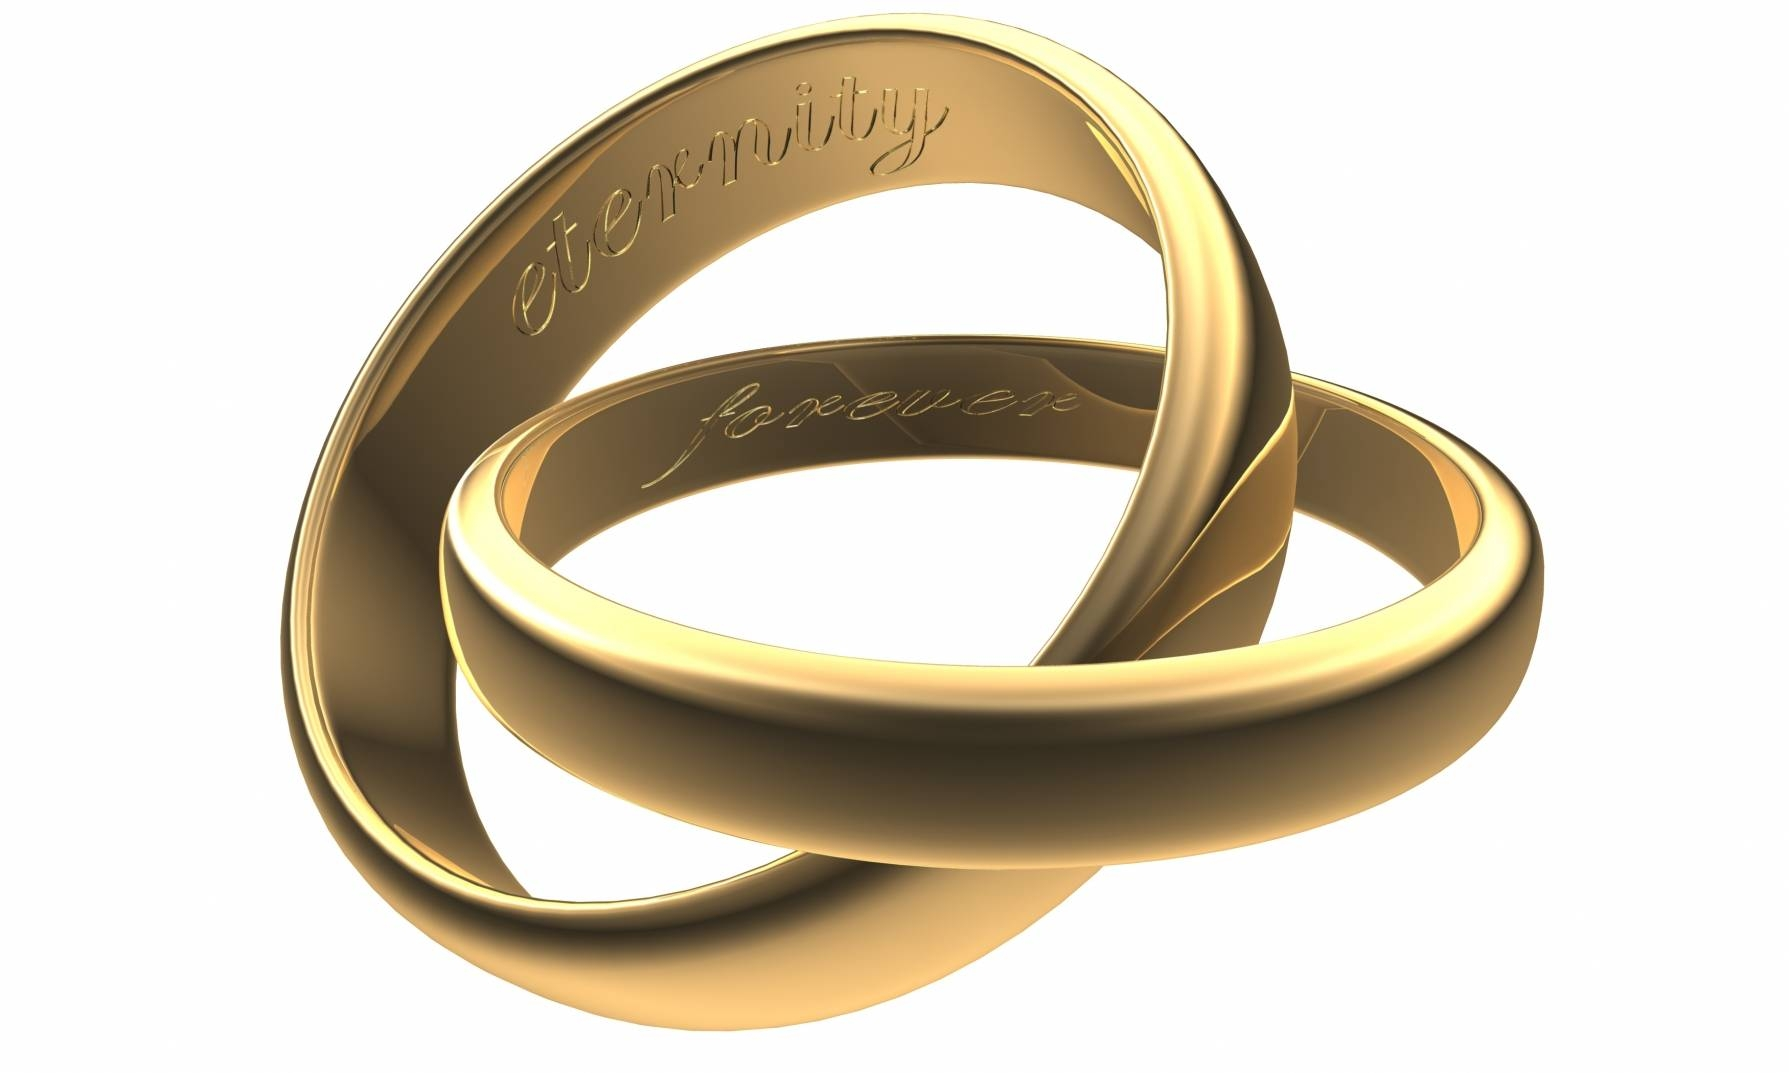 Engraved Wedding Bands | Wedding Band Engraving In Engraved Wedding Bands (View 5 of 15)